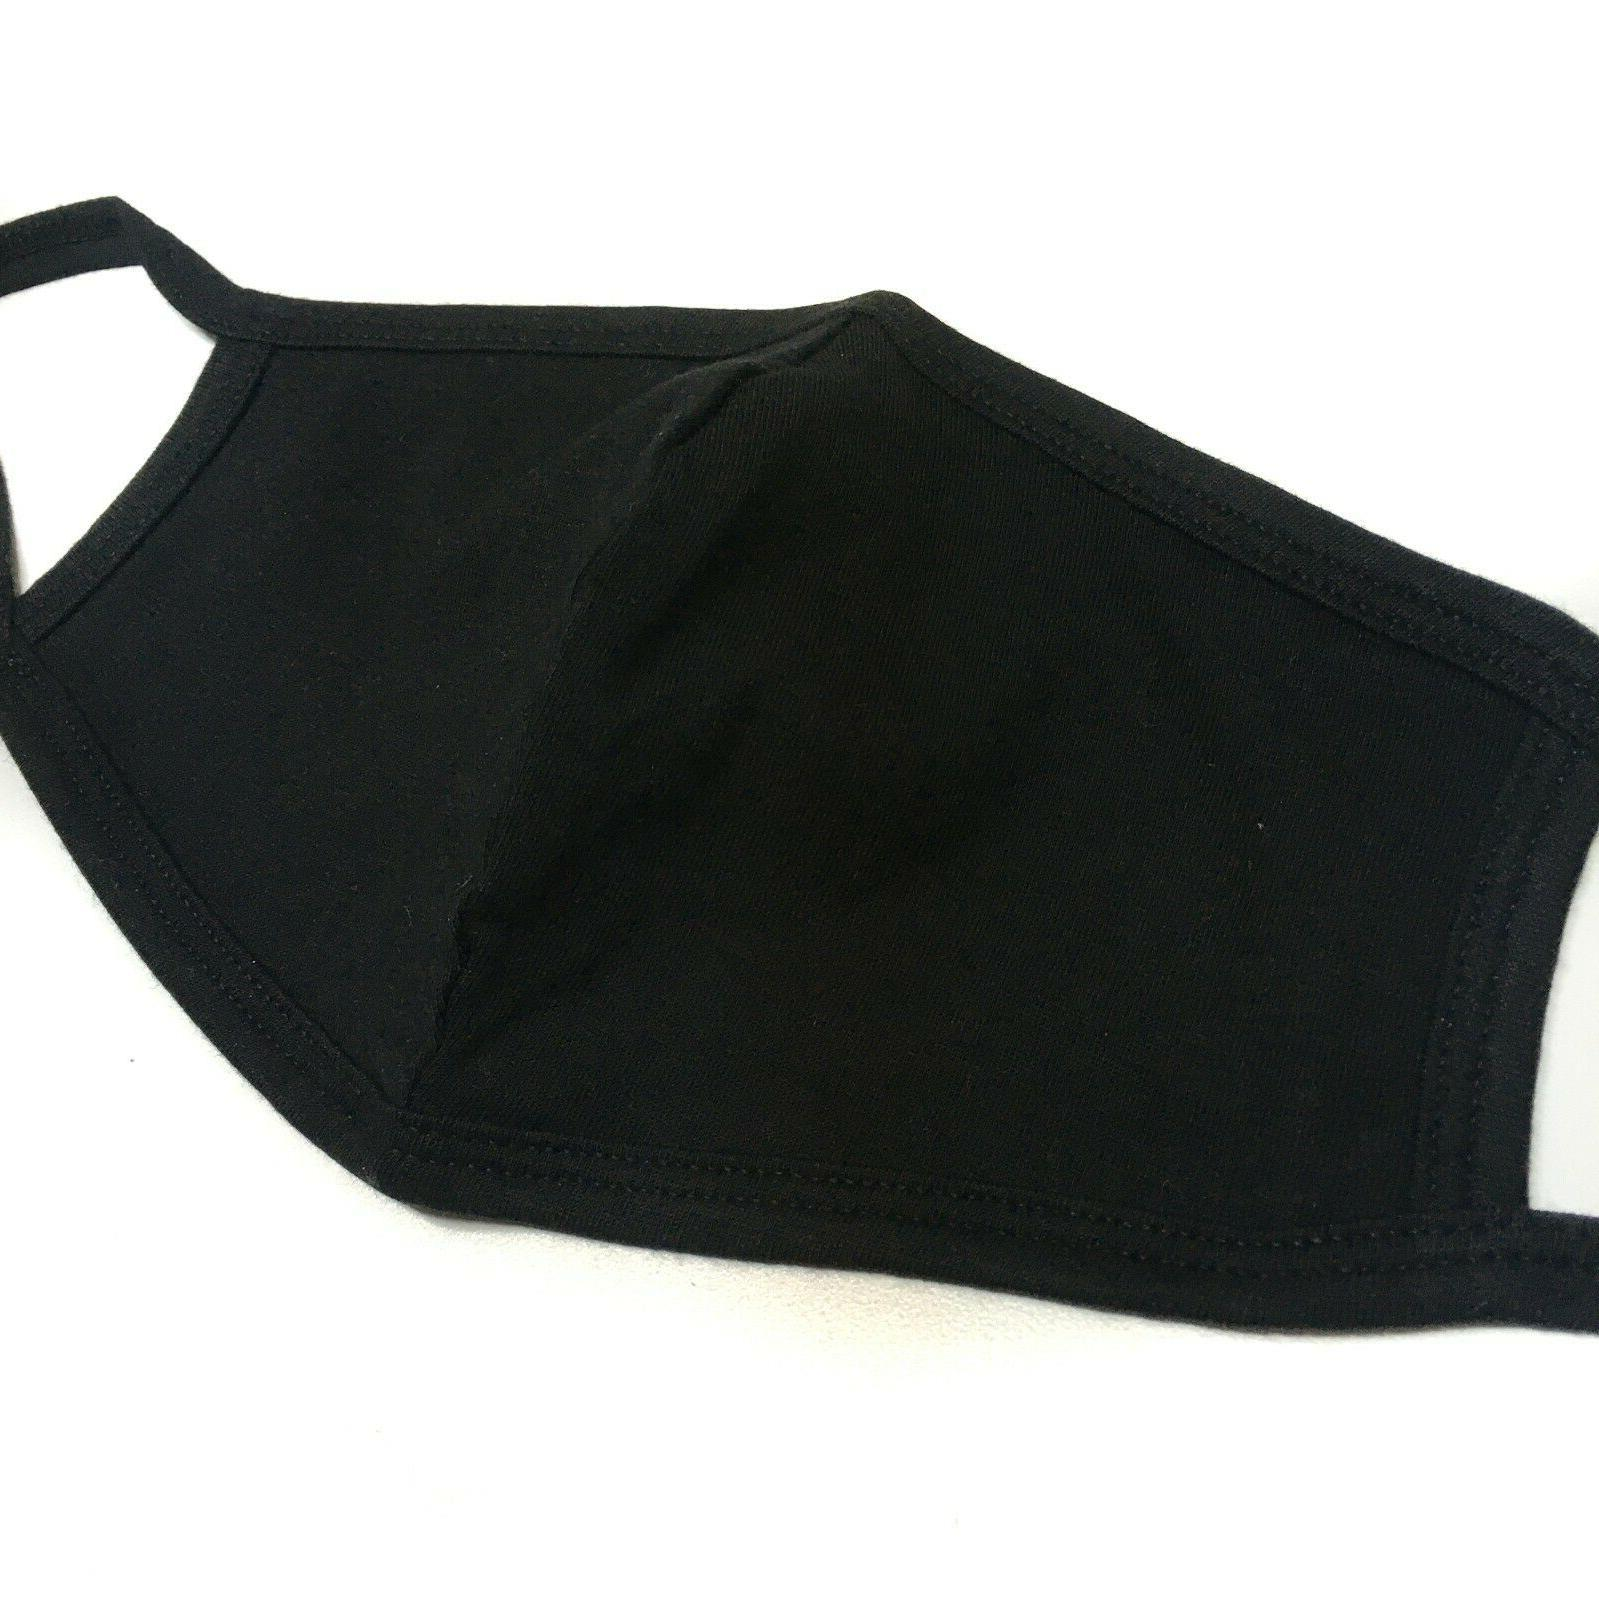 Soft Face Mask Double Layer Fashionable Reusable Cloth